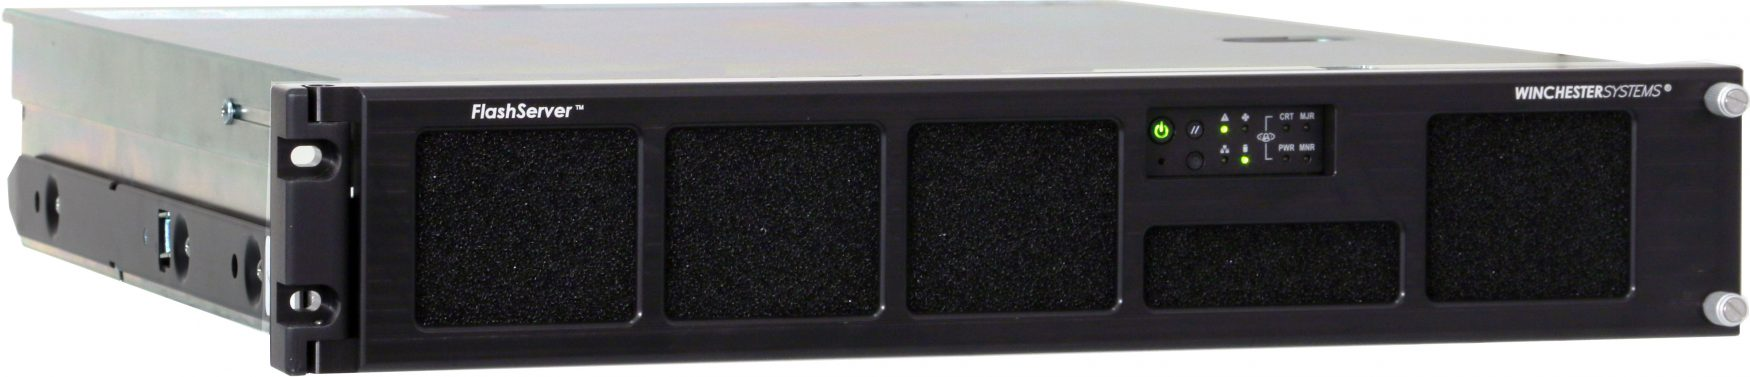 COTS, Rugged, RS-2600 FlashServer Front Angle